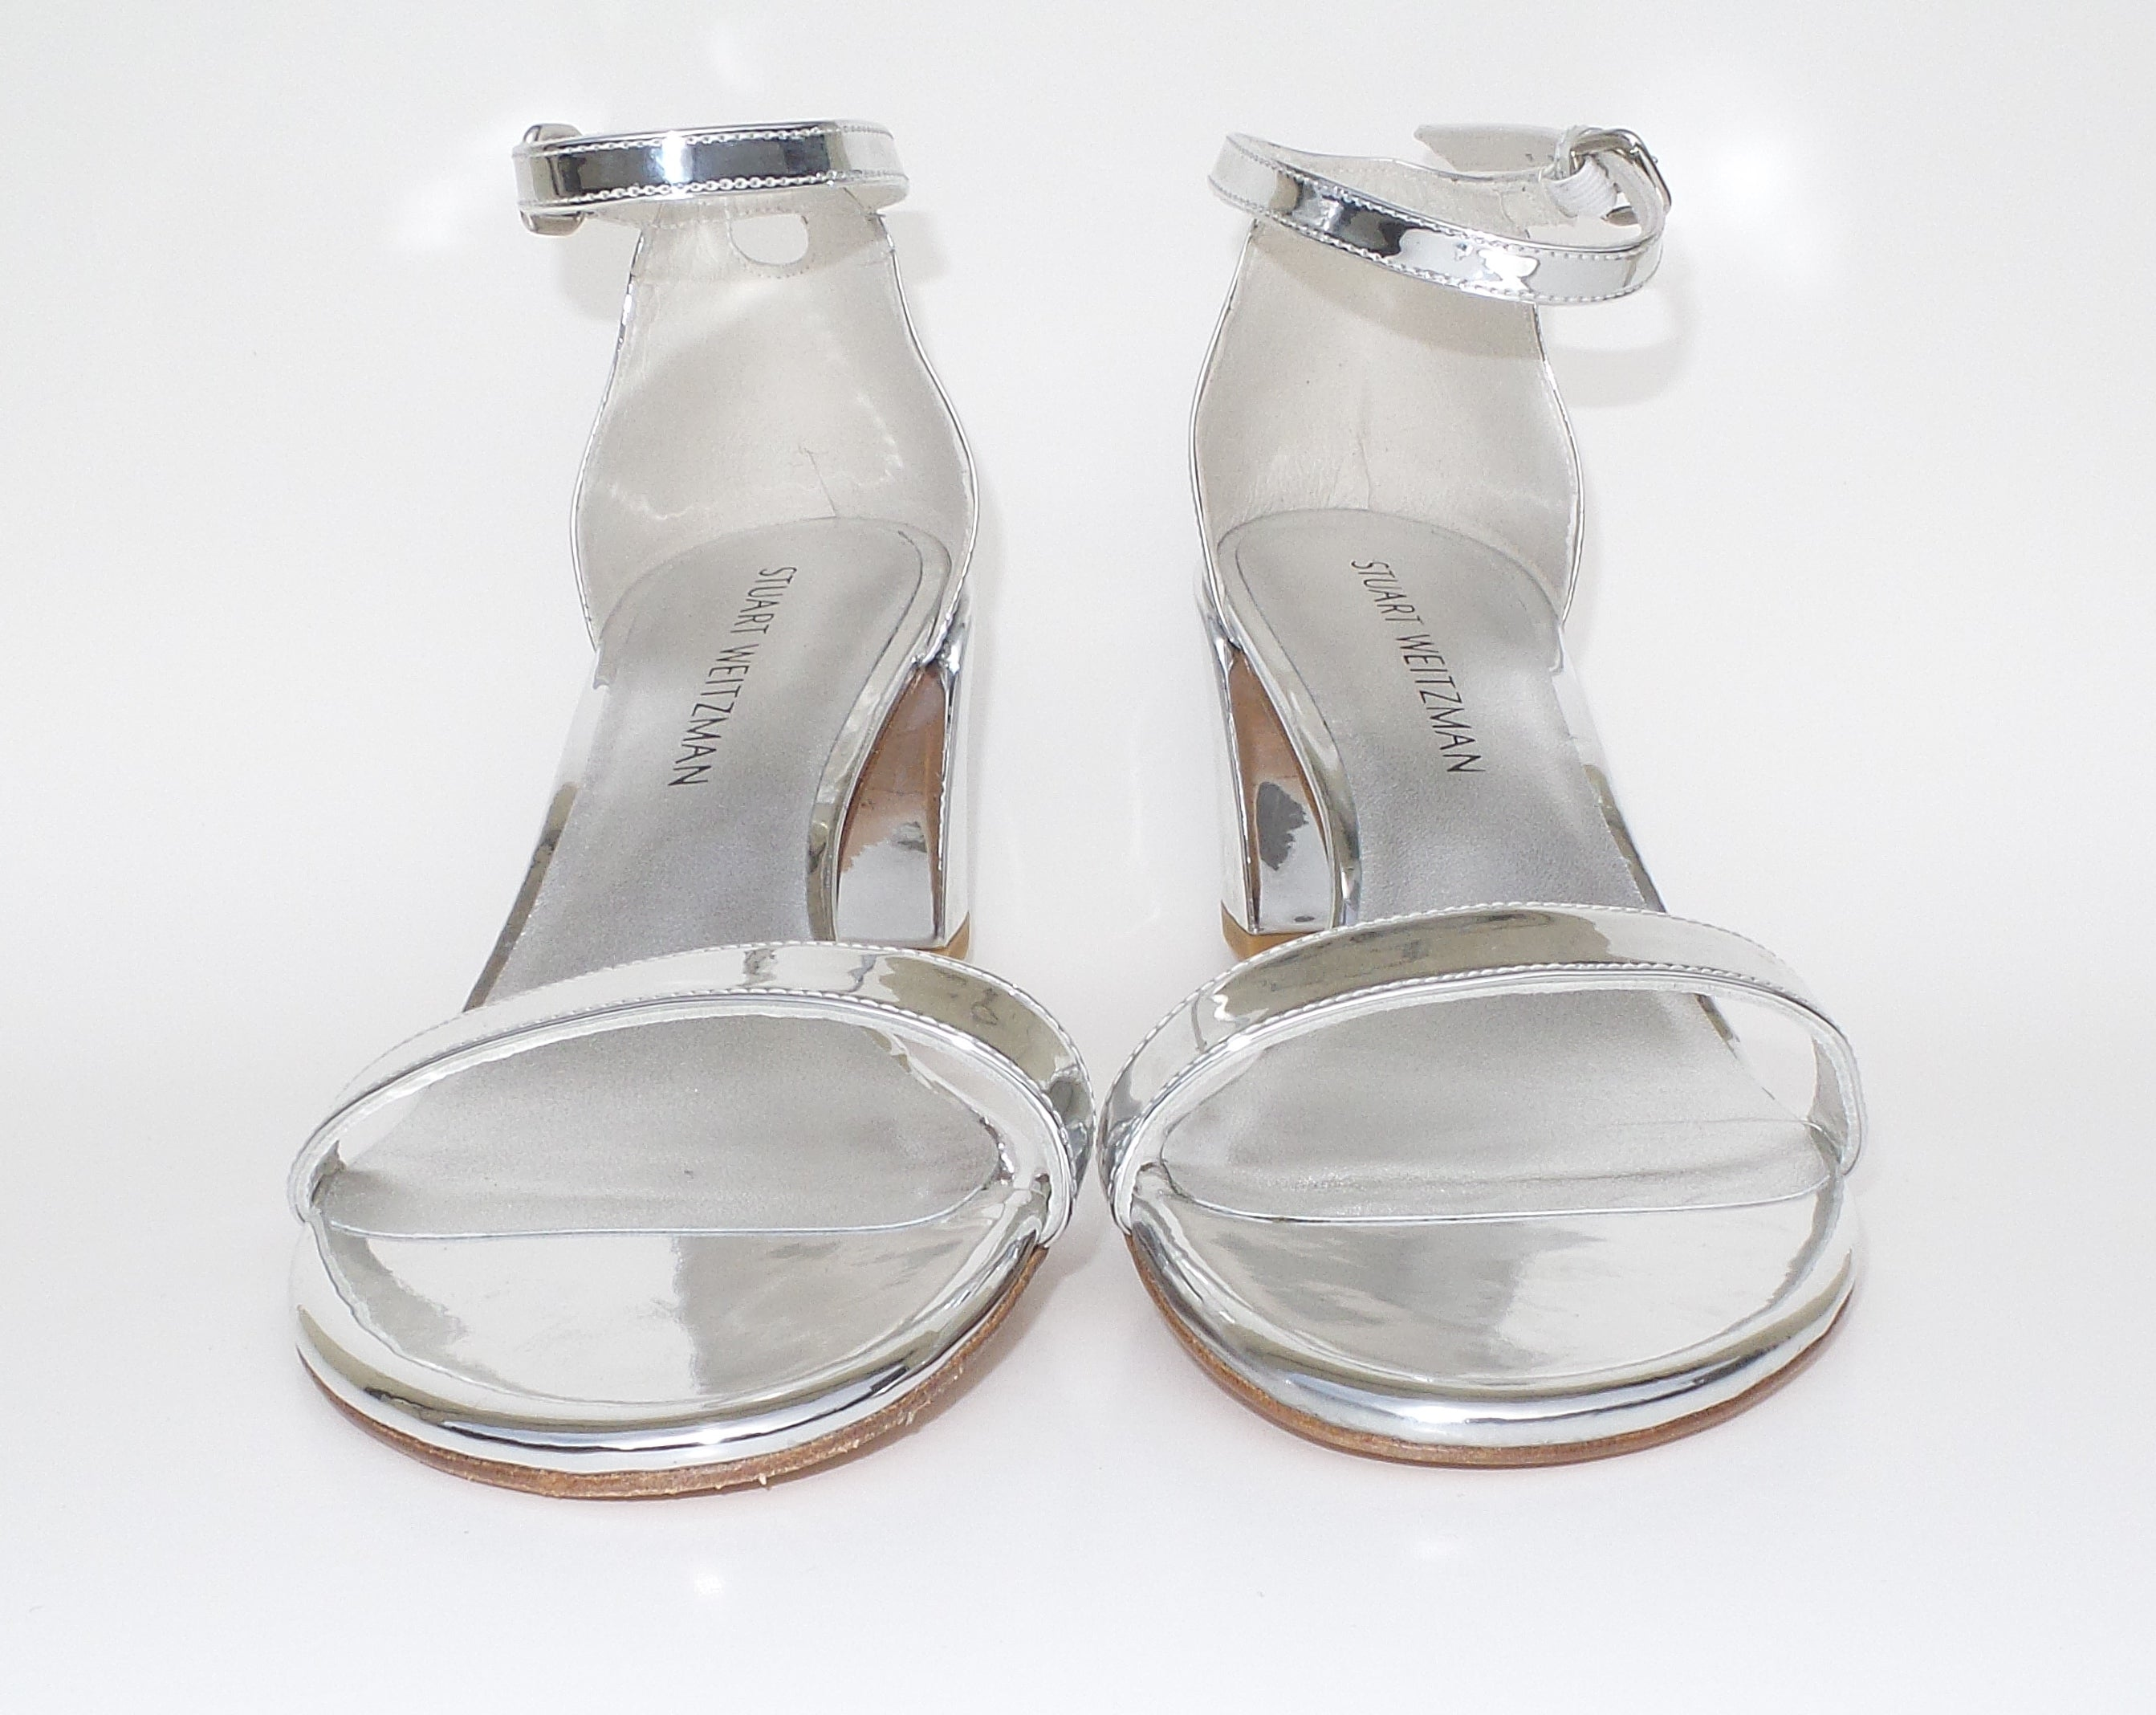 STUART WEITZMAN Simple Metallic Silver Leather 55mm City Block Heel Sandals 9 M